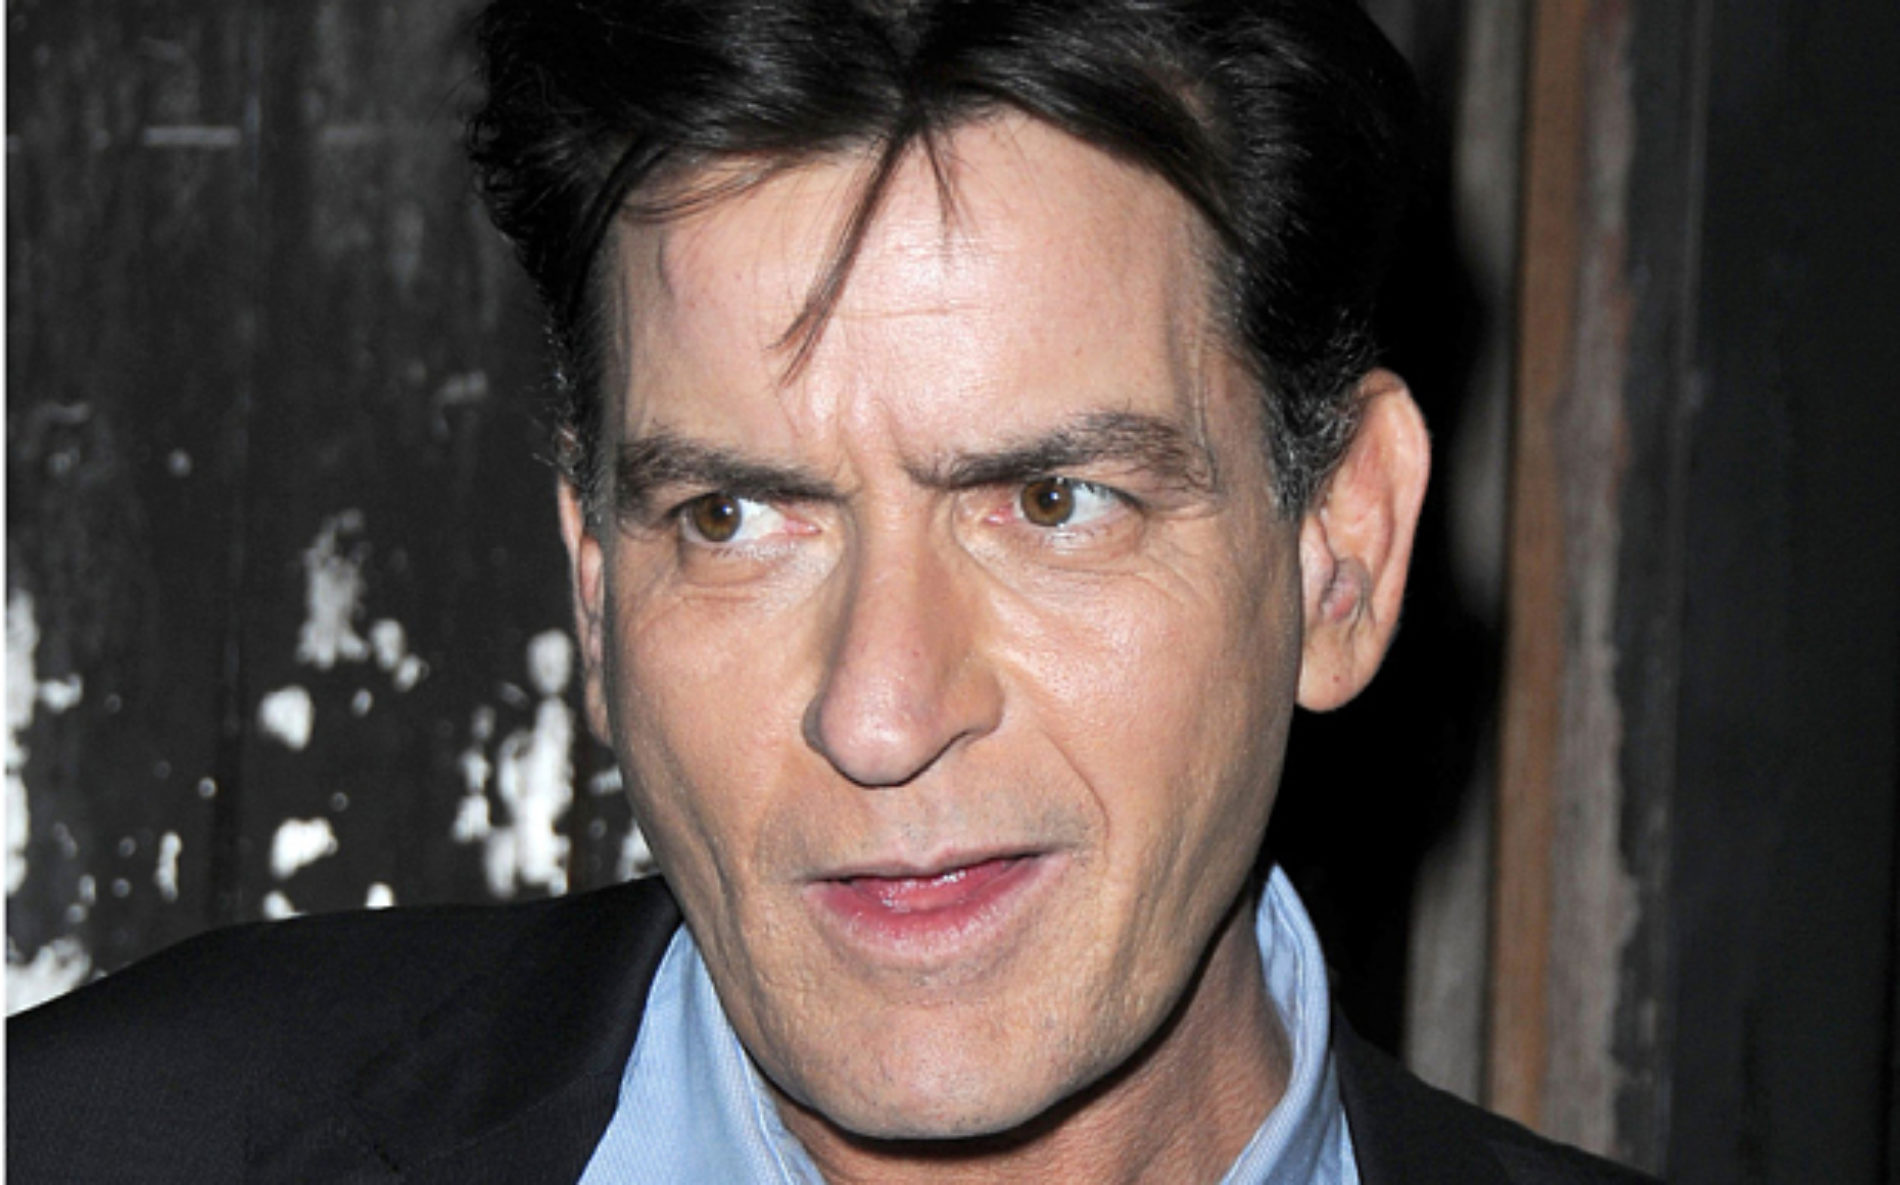 That Piece on Why Charlie Sheen is no Hero for his HIV Admission